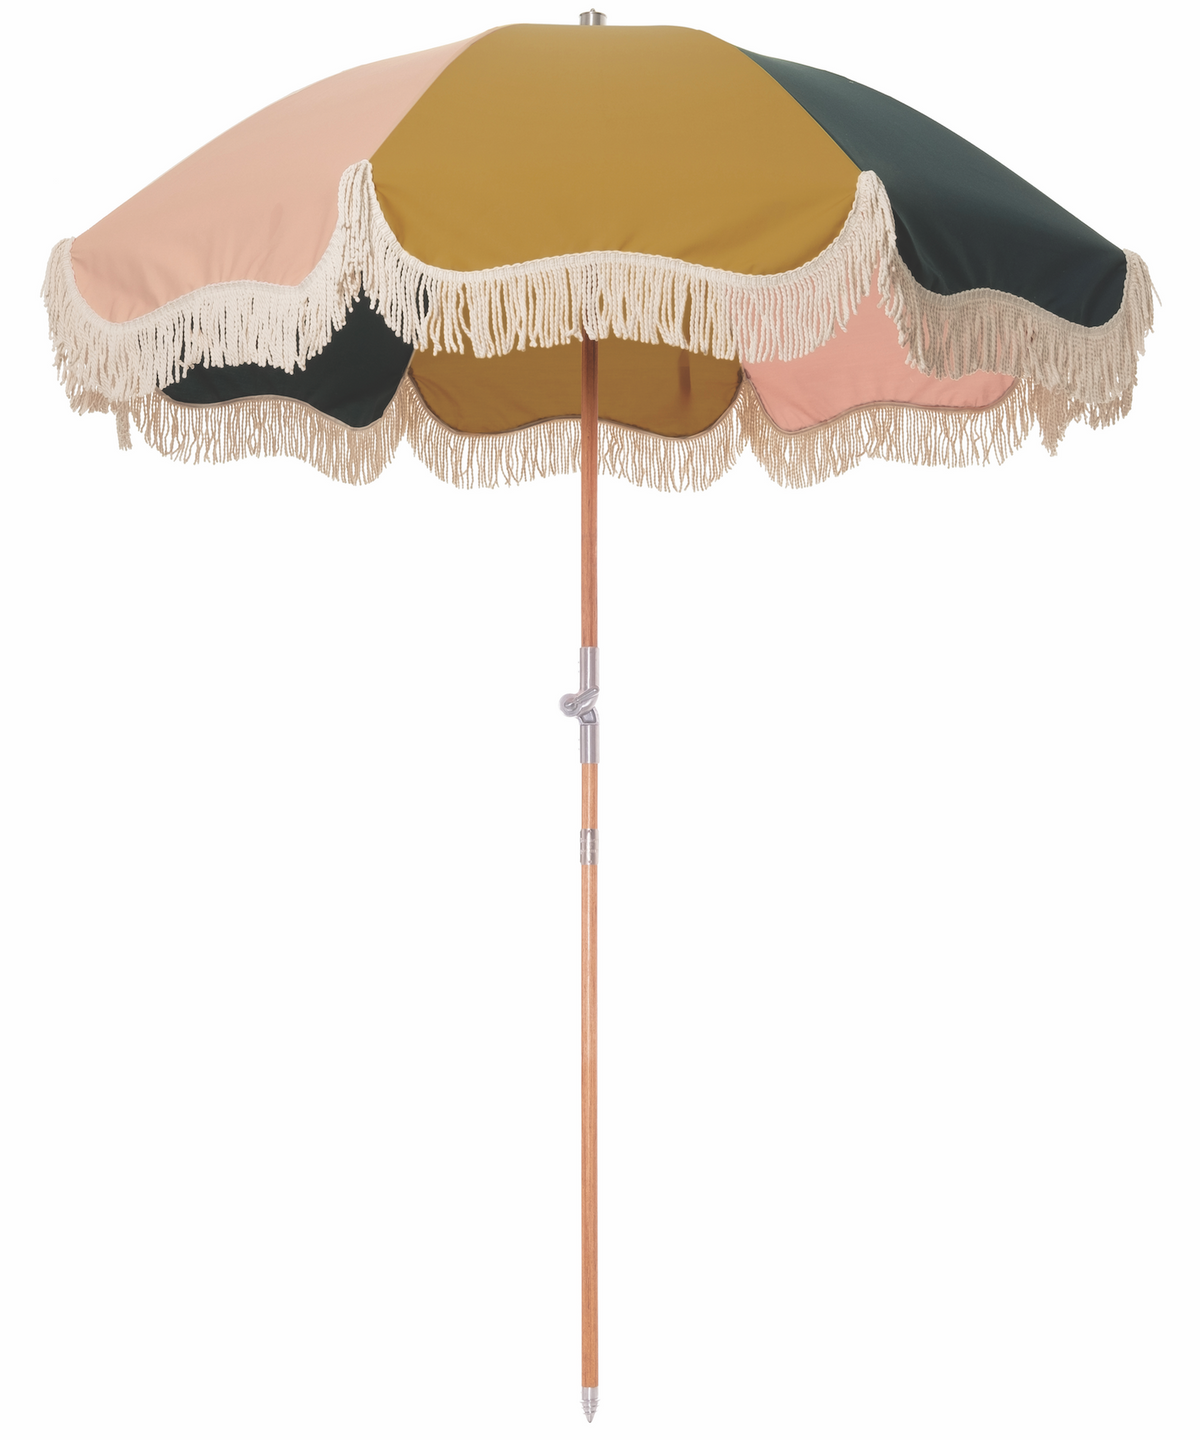 The Premium Beach Umbrella - 70s Panel Cinque